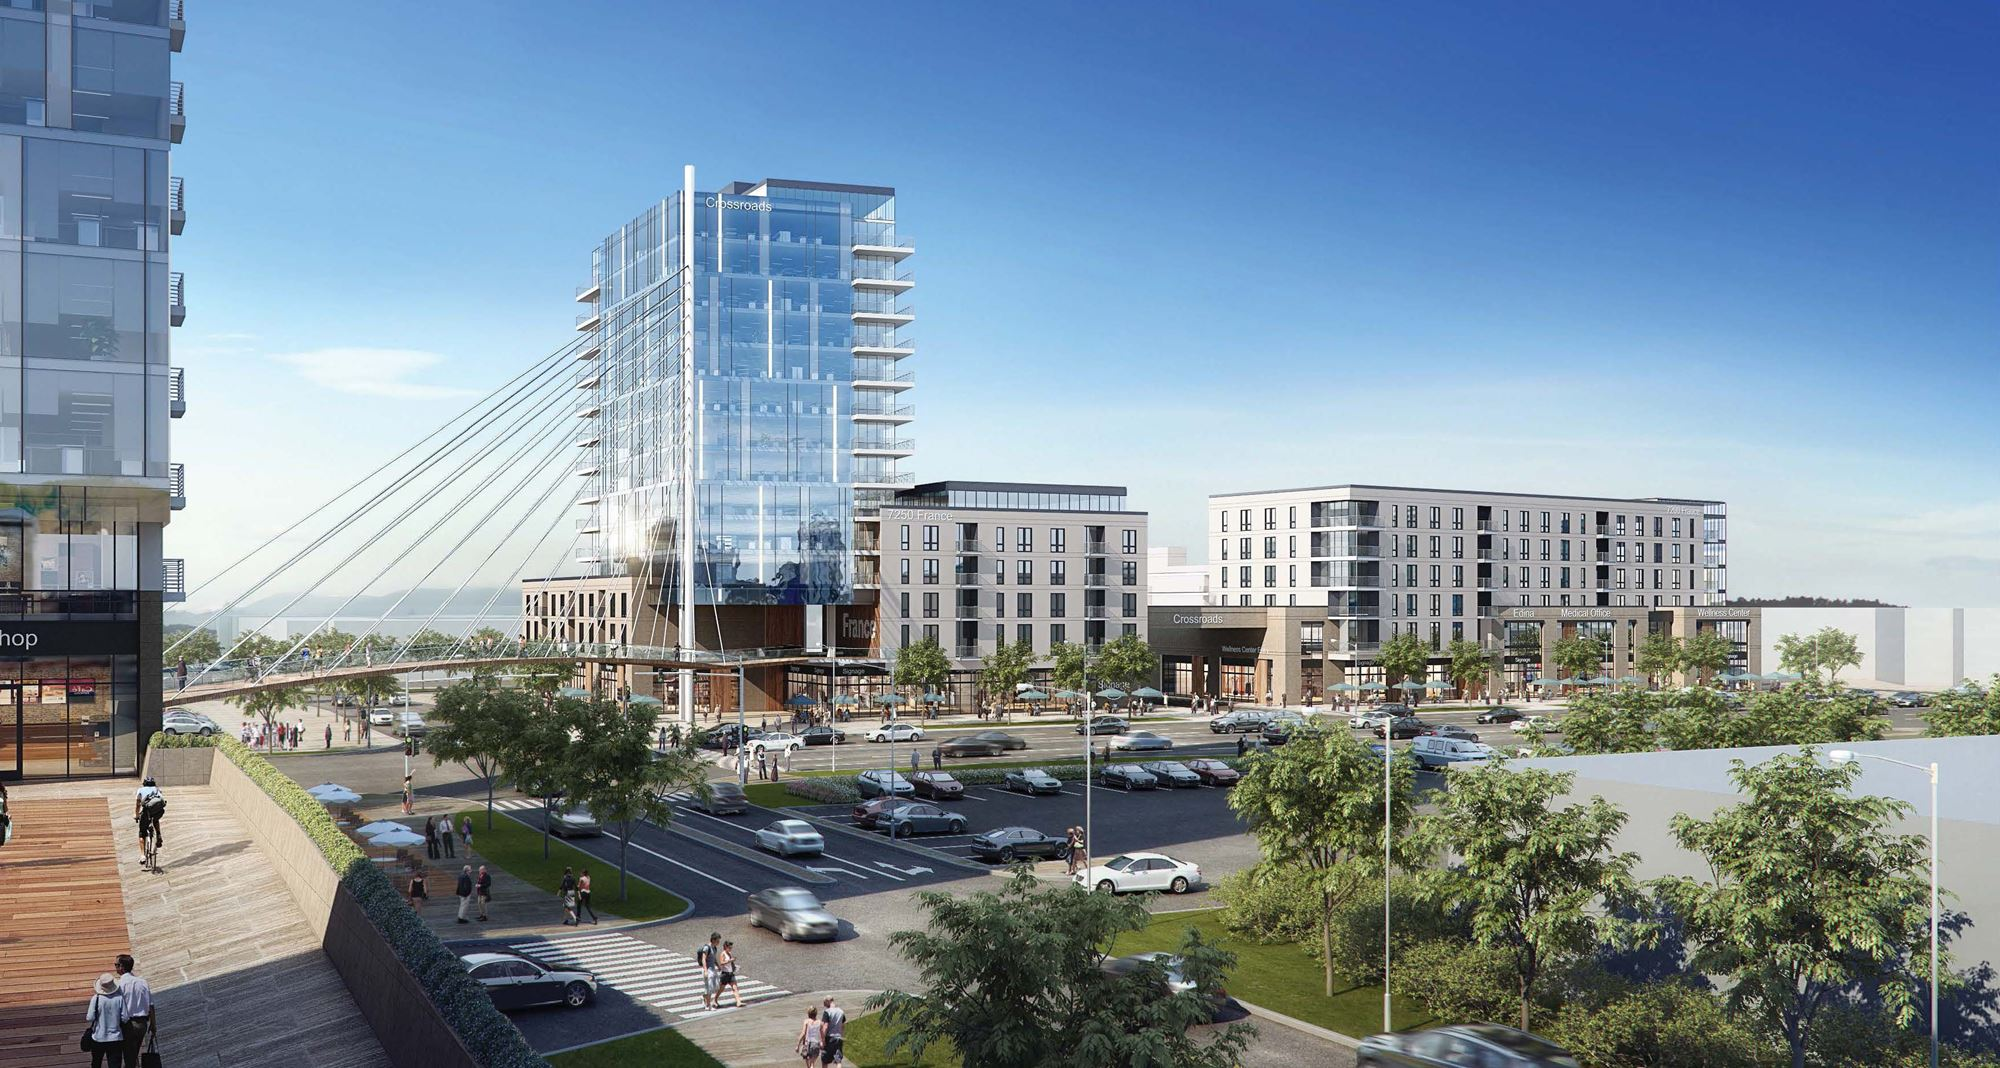 Edina to Consider Major Redevelopment Plan at U.S. Bank Site